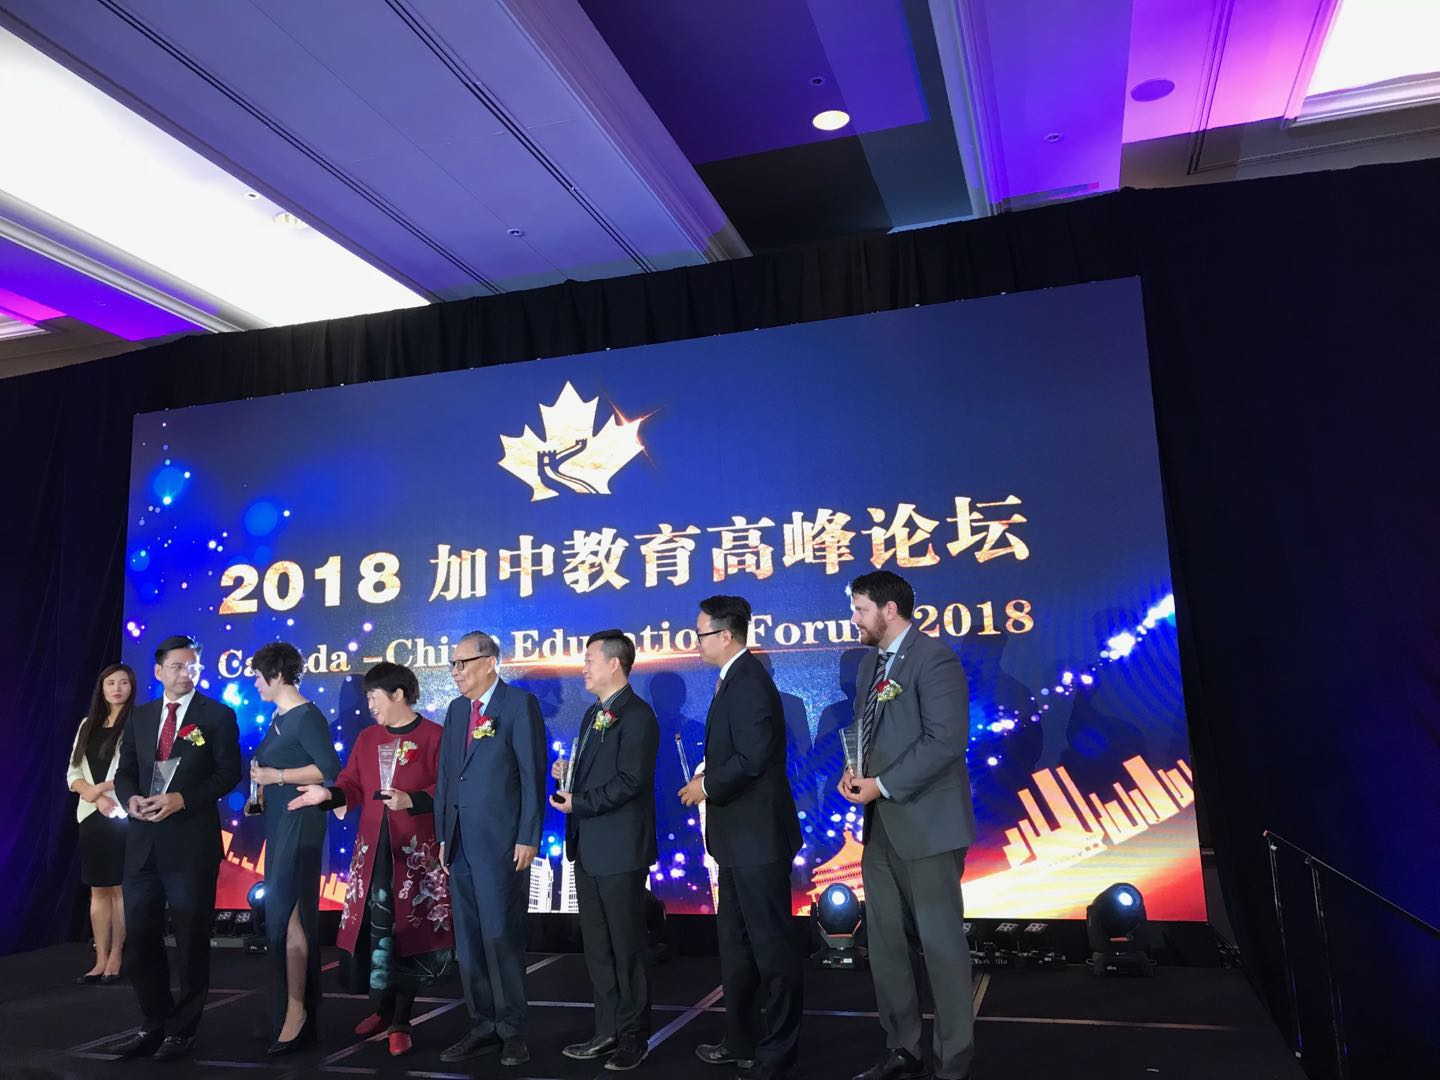 The 2018 Canada-China Education Forum